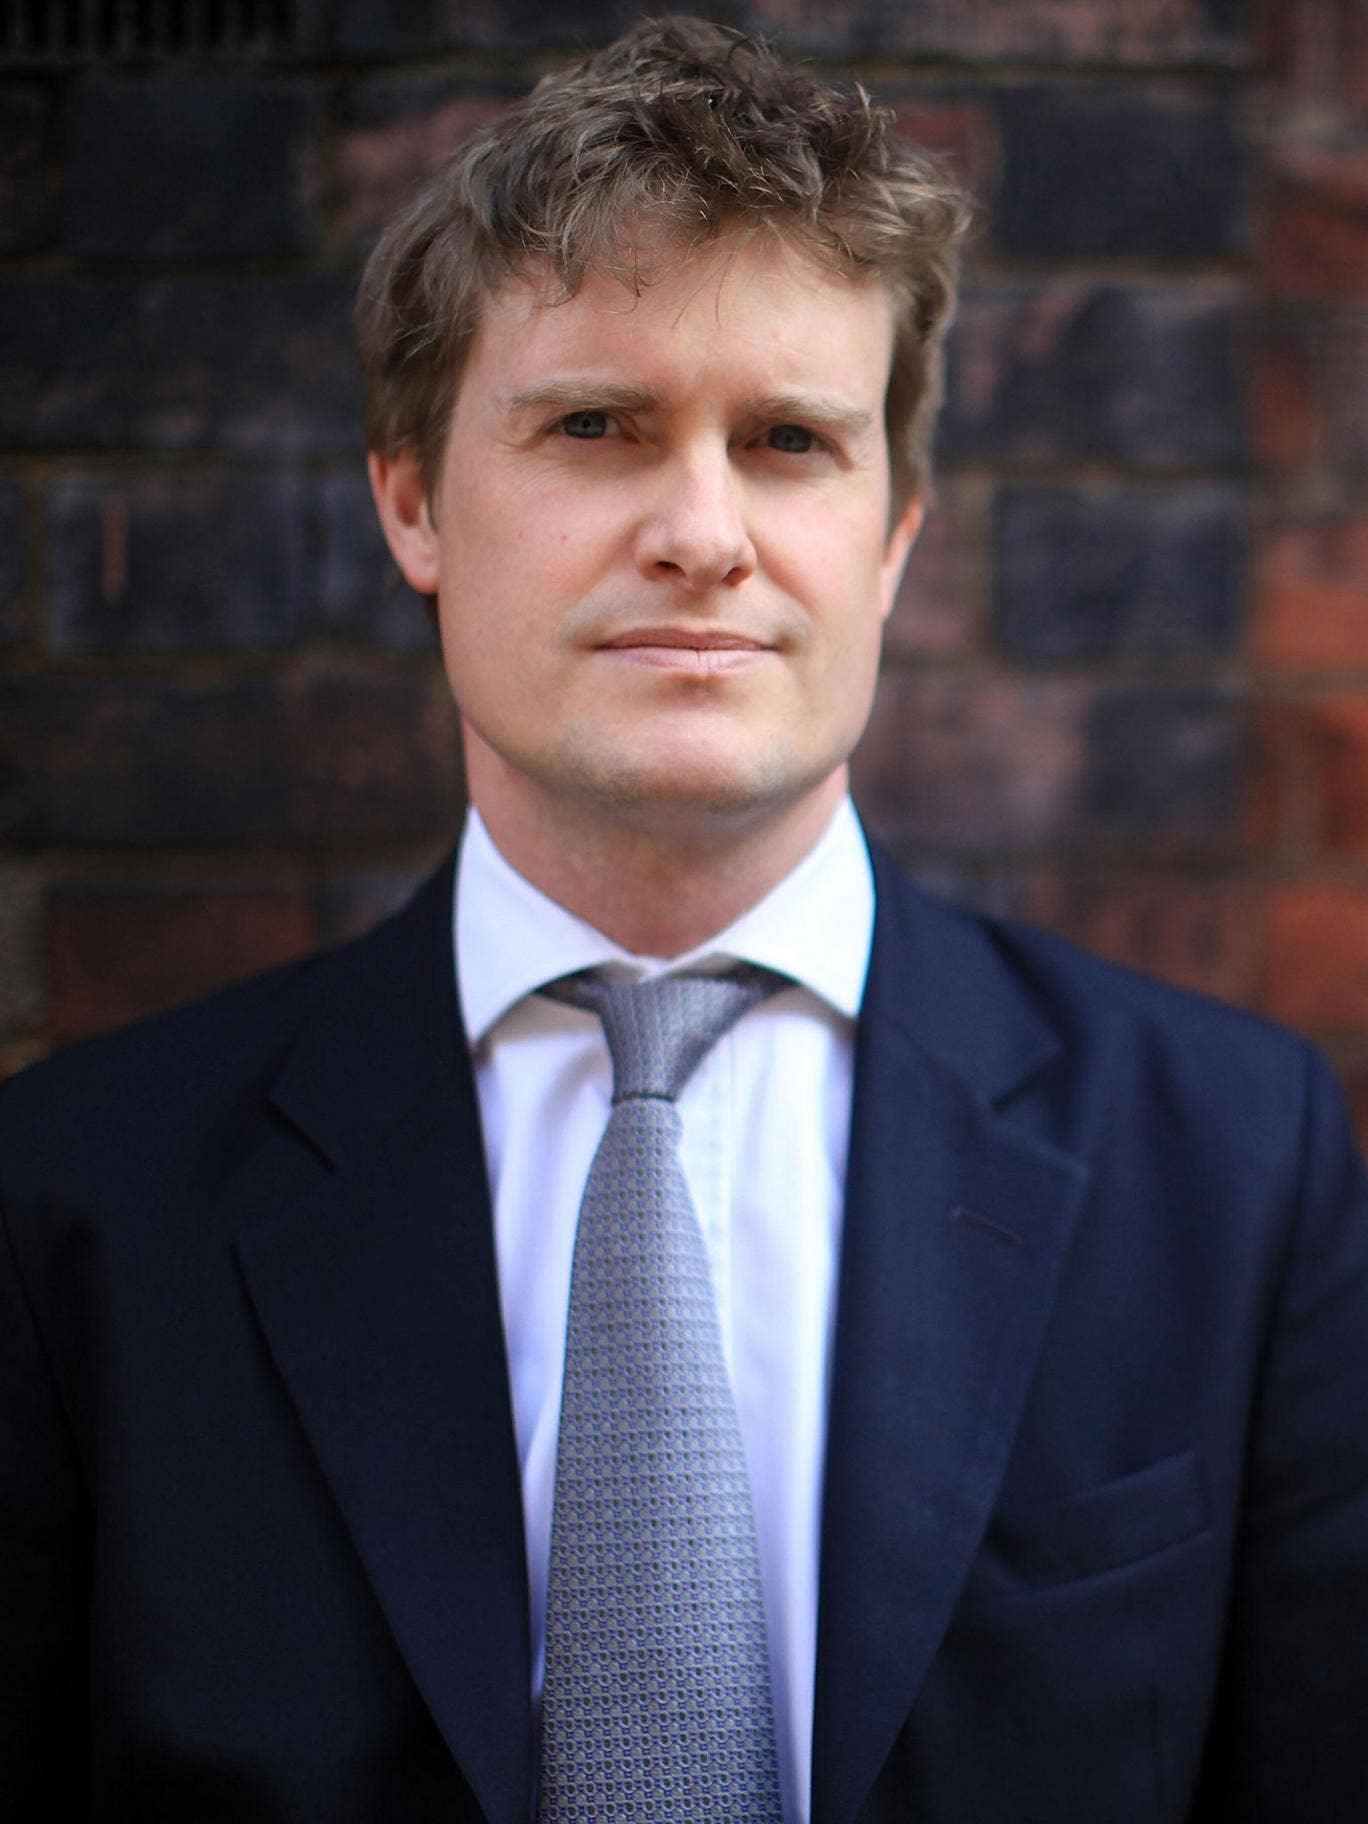 Shadow education secretary Tristram Hunt has been criticised for his blunt response to an enquiry about Labour education policy